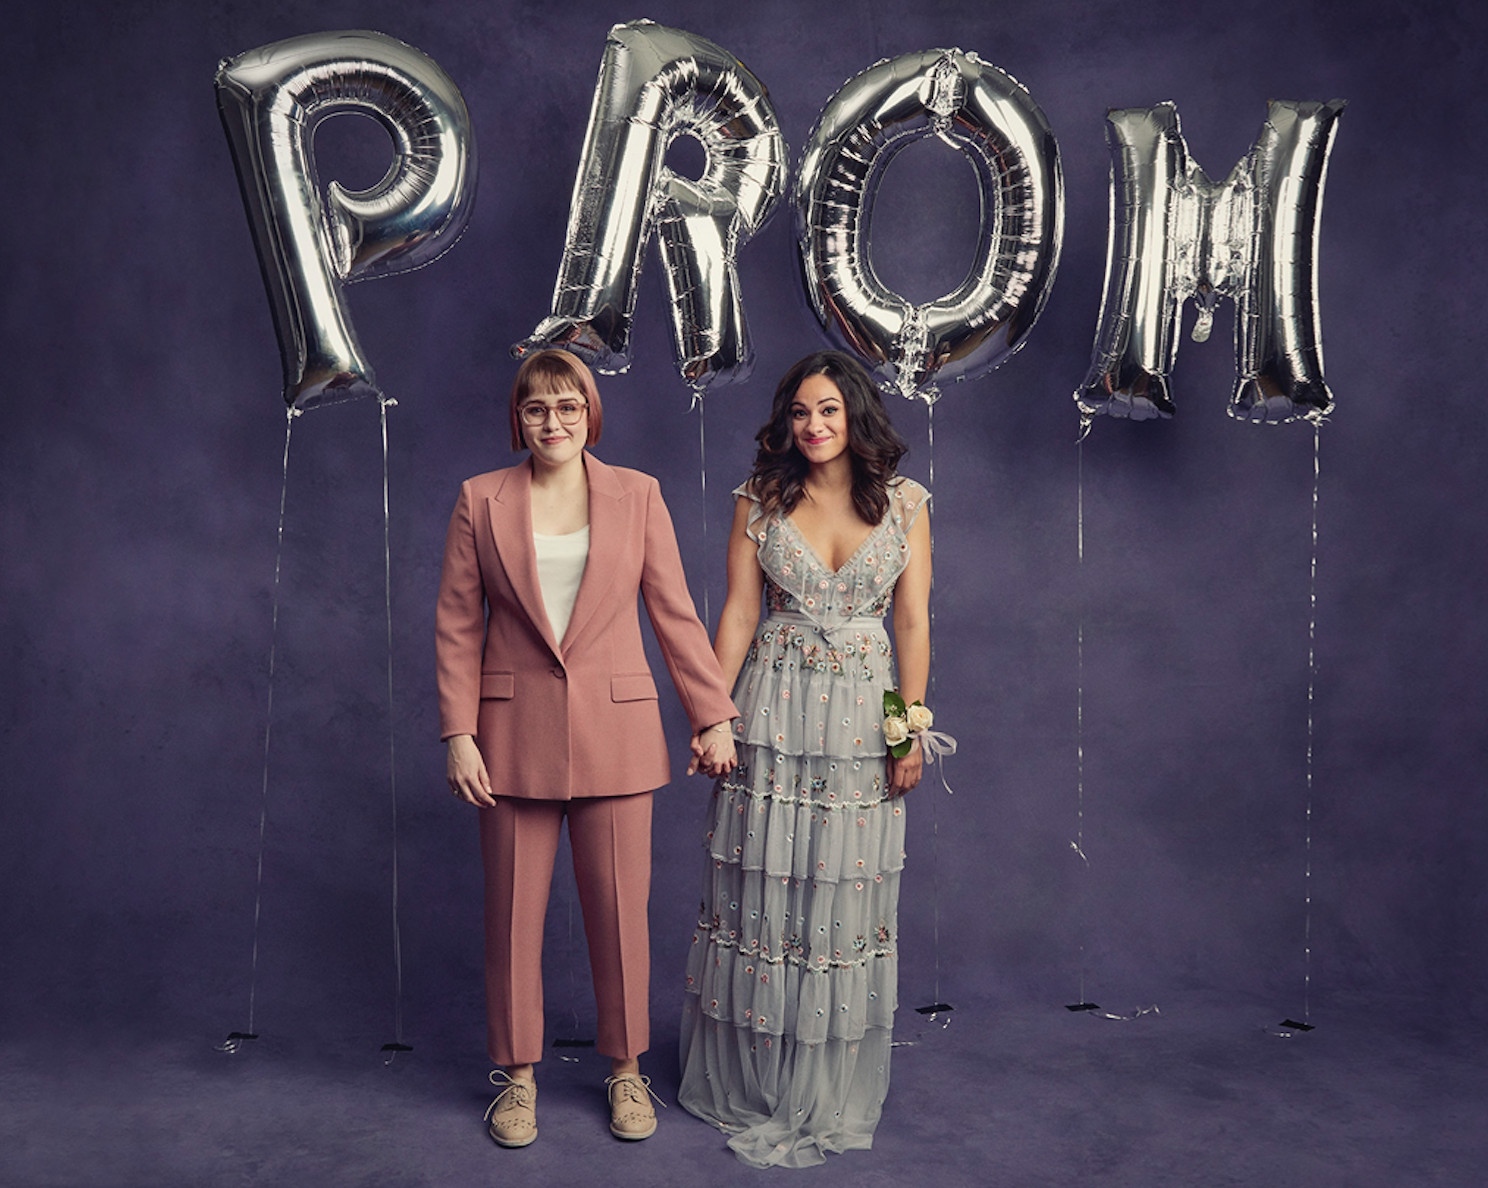 LGBTQ Teens Share Their Experiences Attending Prom